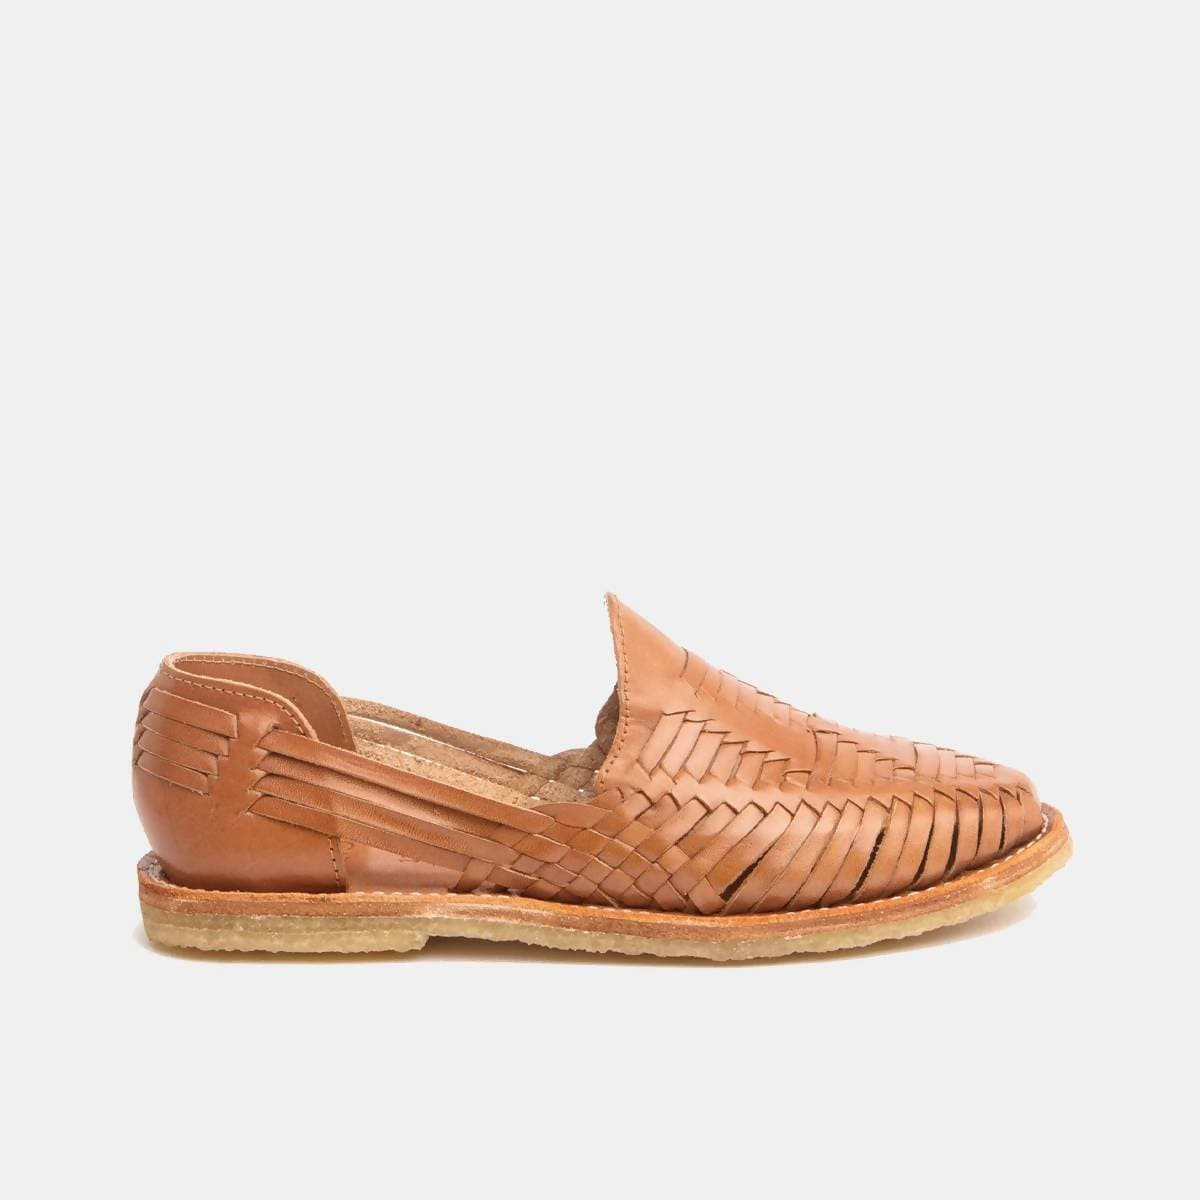 CANO | Authentic Women's Huaraches - MARA Natural Cognac